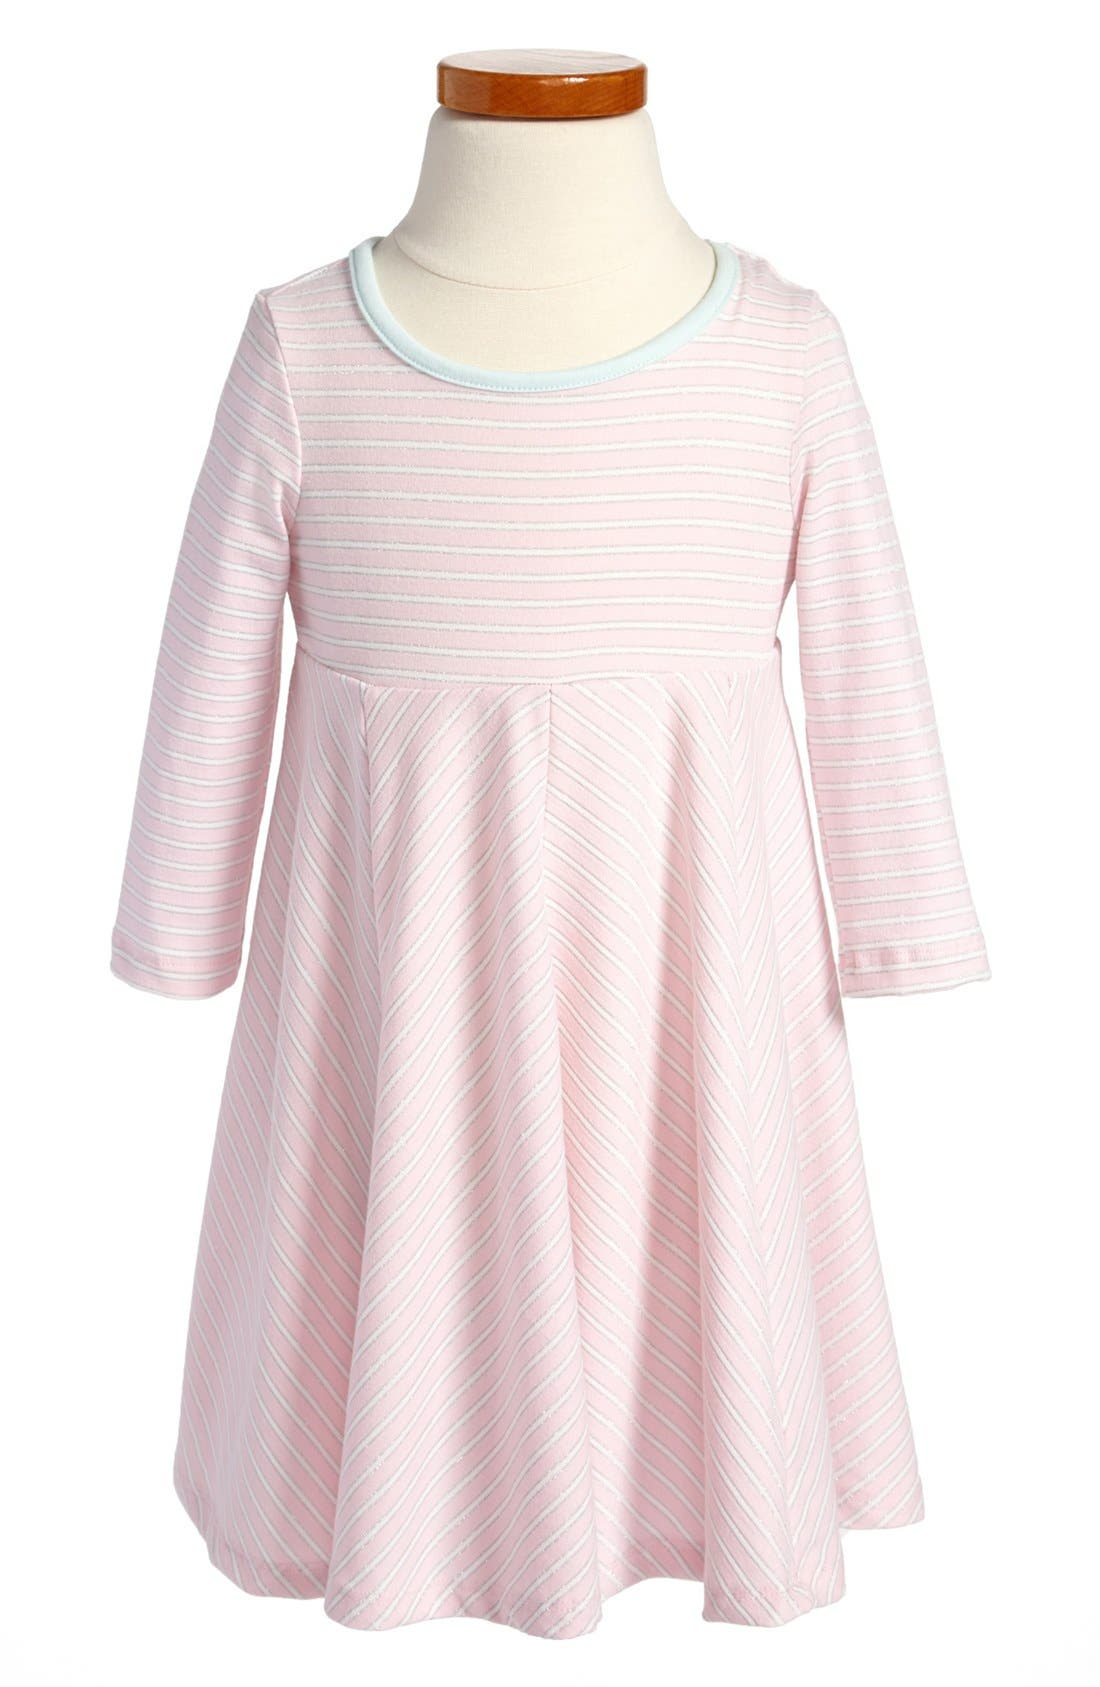 Main Image - Pippa & Julie Stripe Knit Dress (Toddler Girls)